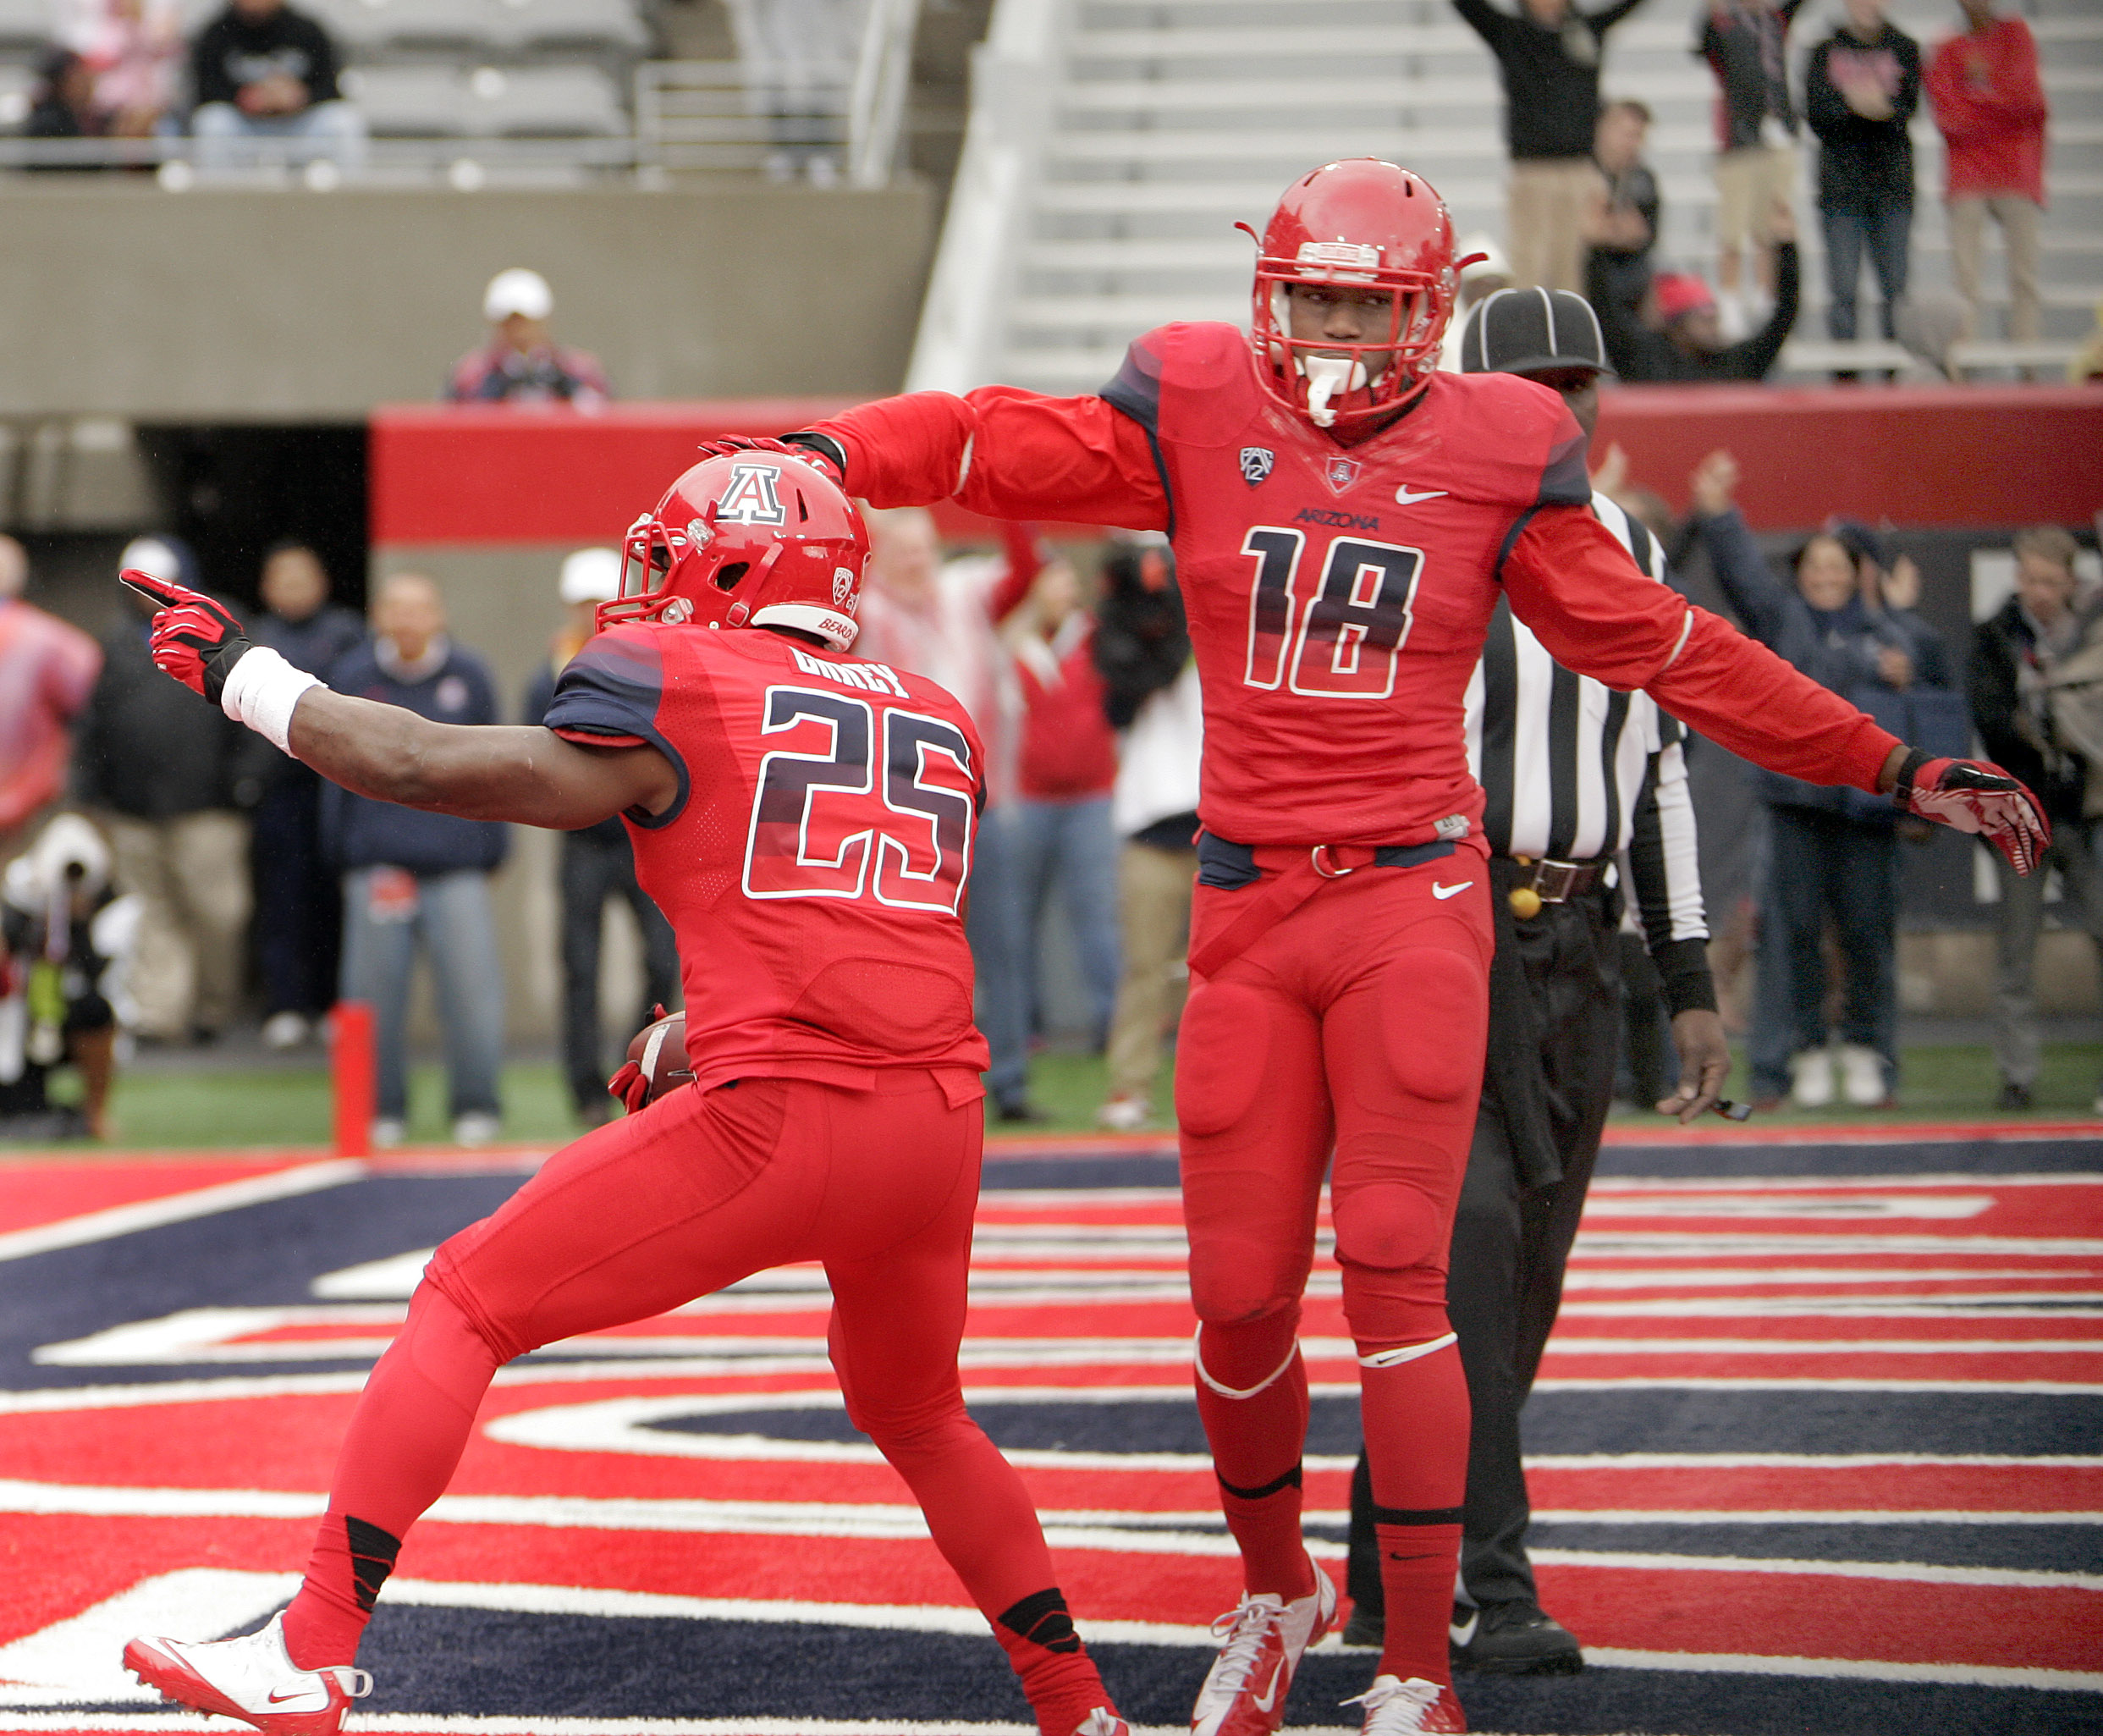 Arizona's Ka'Deem Casey (25) is congratulated by Terrence Miller (18) after scoring a touchdown in the first half of an NCAA college football game against Oregon, Saturday, Nov. 23, 2013 in Tucson, Ariz.  (AP Photo/Wily Low)